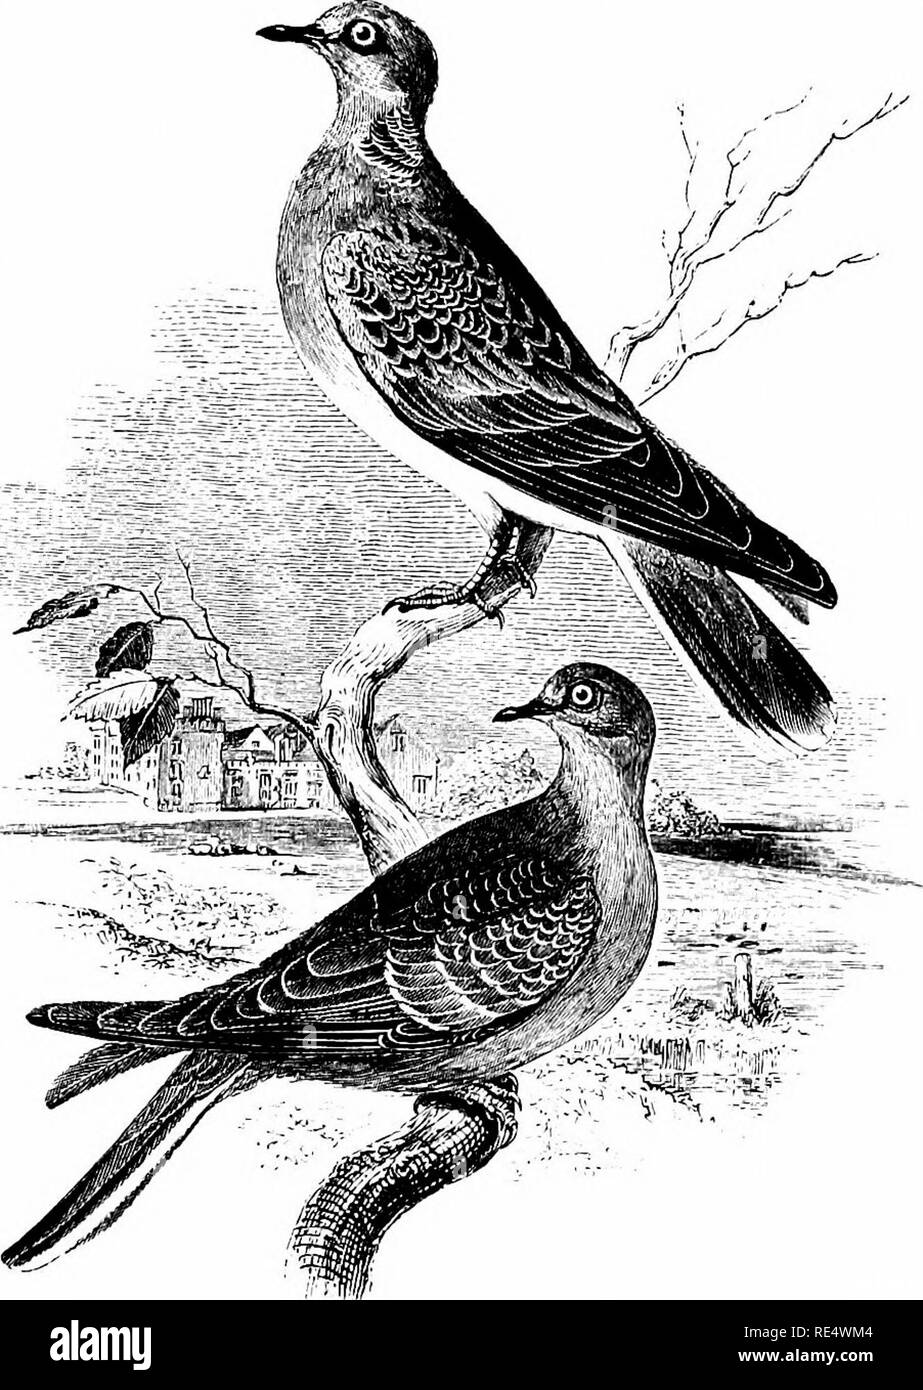 . An illustrated manual of British birds. Birds. COLUMBID/E. 485. THE TURTLE-DOVE. Tt^RTUR COMMT^NIS, Sclby. The Turtle-Dove is only a summer-visitor to the British Islands, arriving in the southern districts about the end of April or early in May, according to the nature of the season. In Cornwall, Western Wales, and Lancashire it is infrequent, but it is abundant in the eastern and midland counties, and is now of more or less regular occurrence up to about the line of Sheffield, north of which it is comparatively rare; it has, however, been known to breed in Durham and Cumberland, and is rec - Stock Image